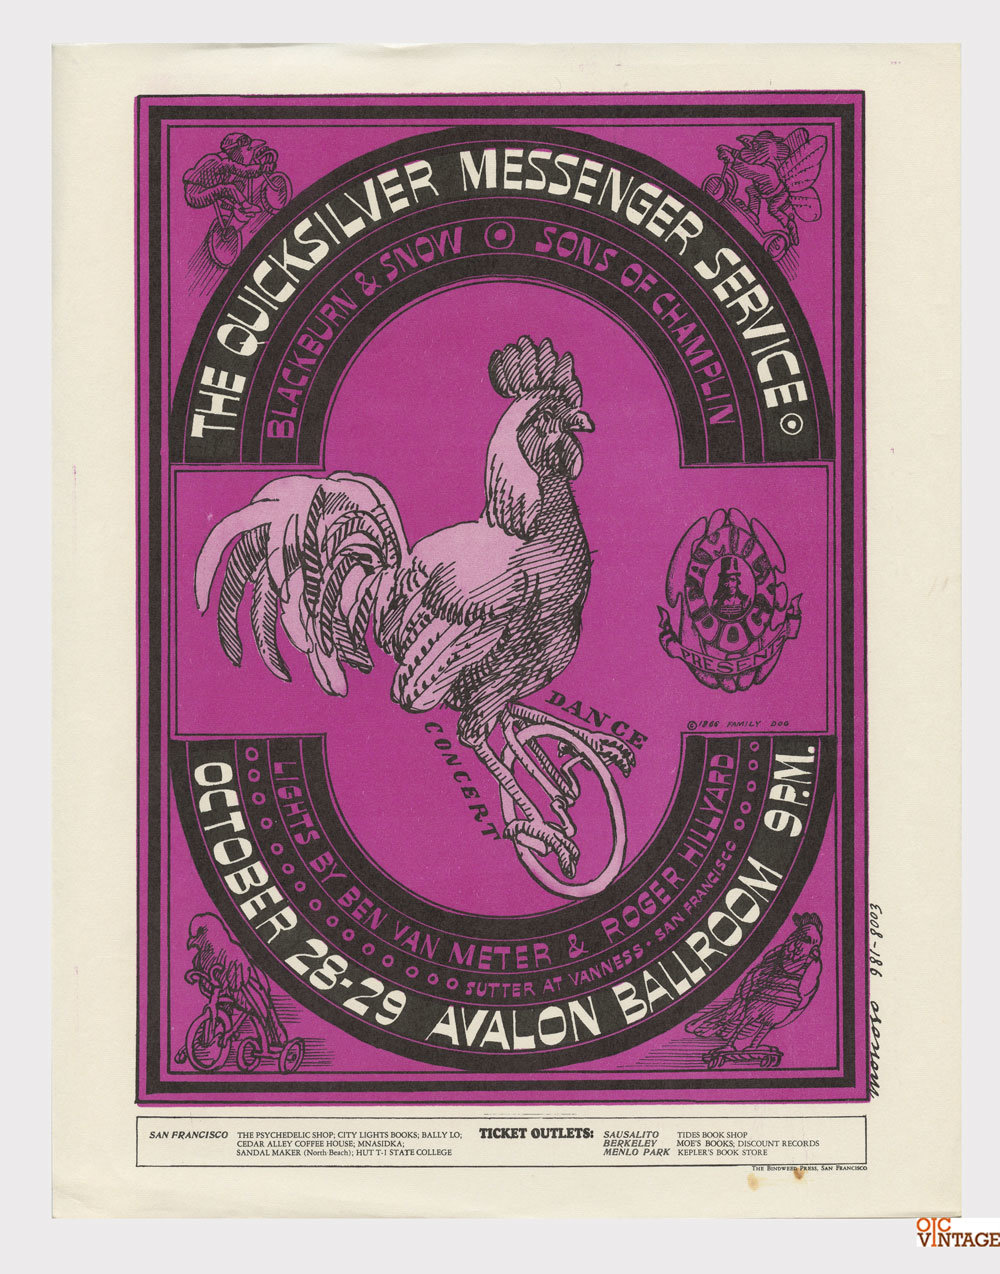 Family Dog 032 Handbill The Chicken on the Unicycle 1966 Oct 28 Quicksilver Messenger Service